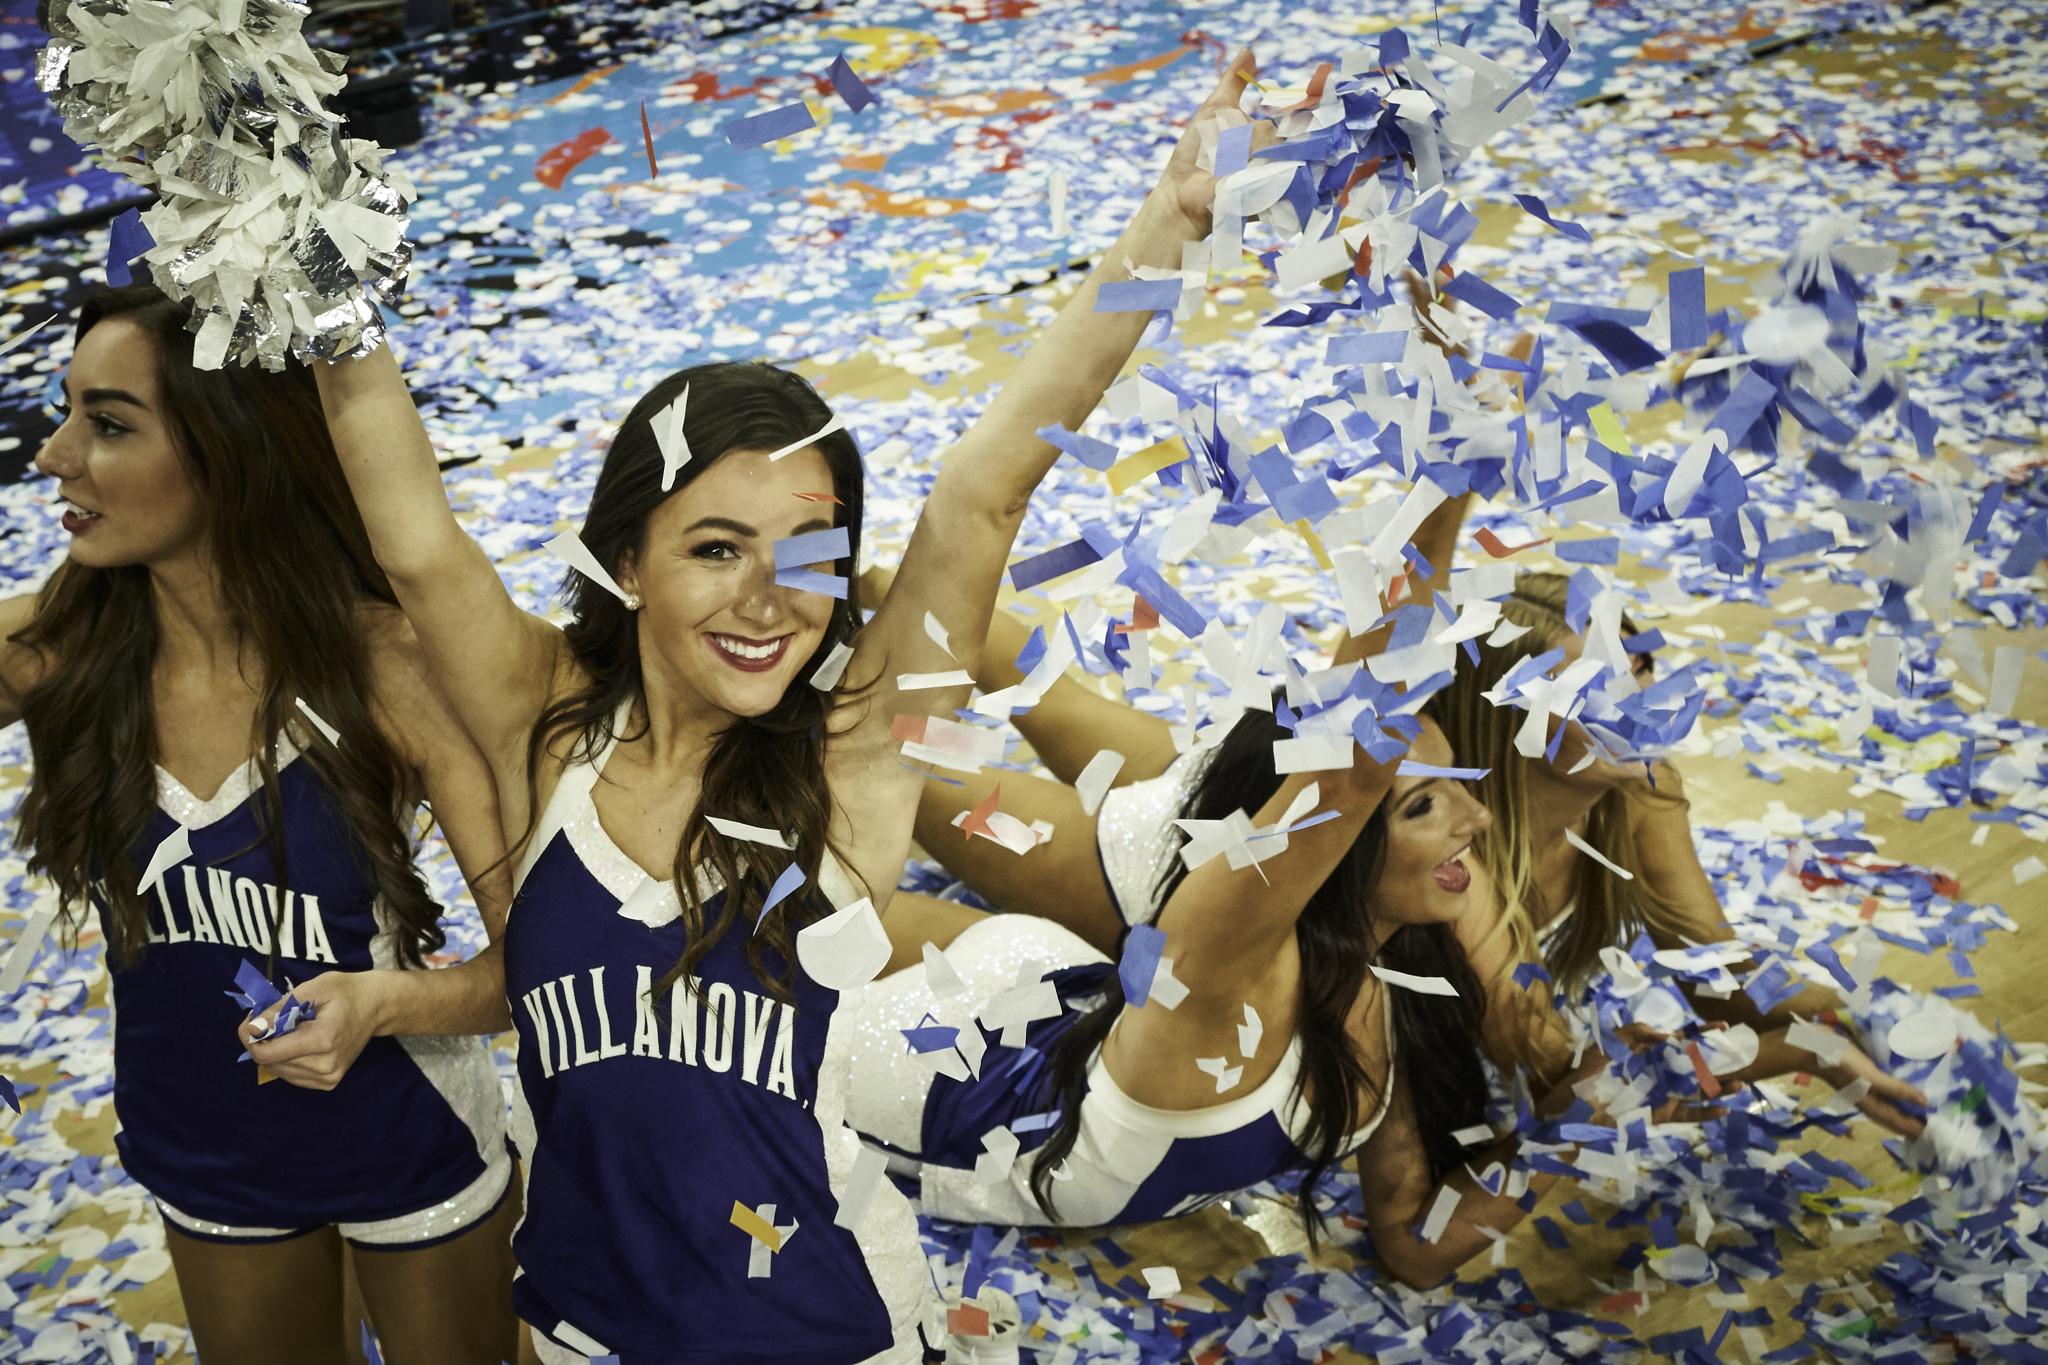 Villanova cheerleaders celebrate on a court full of confetti.   Sony A7rIII, Sony 12-24mm f4 G